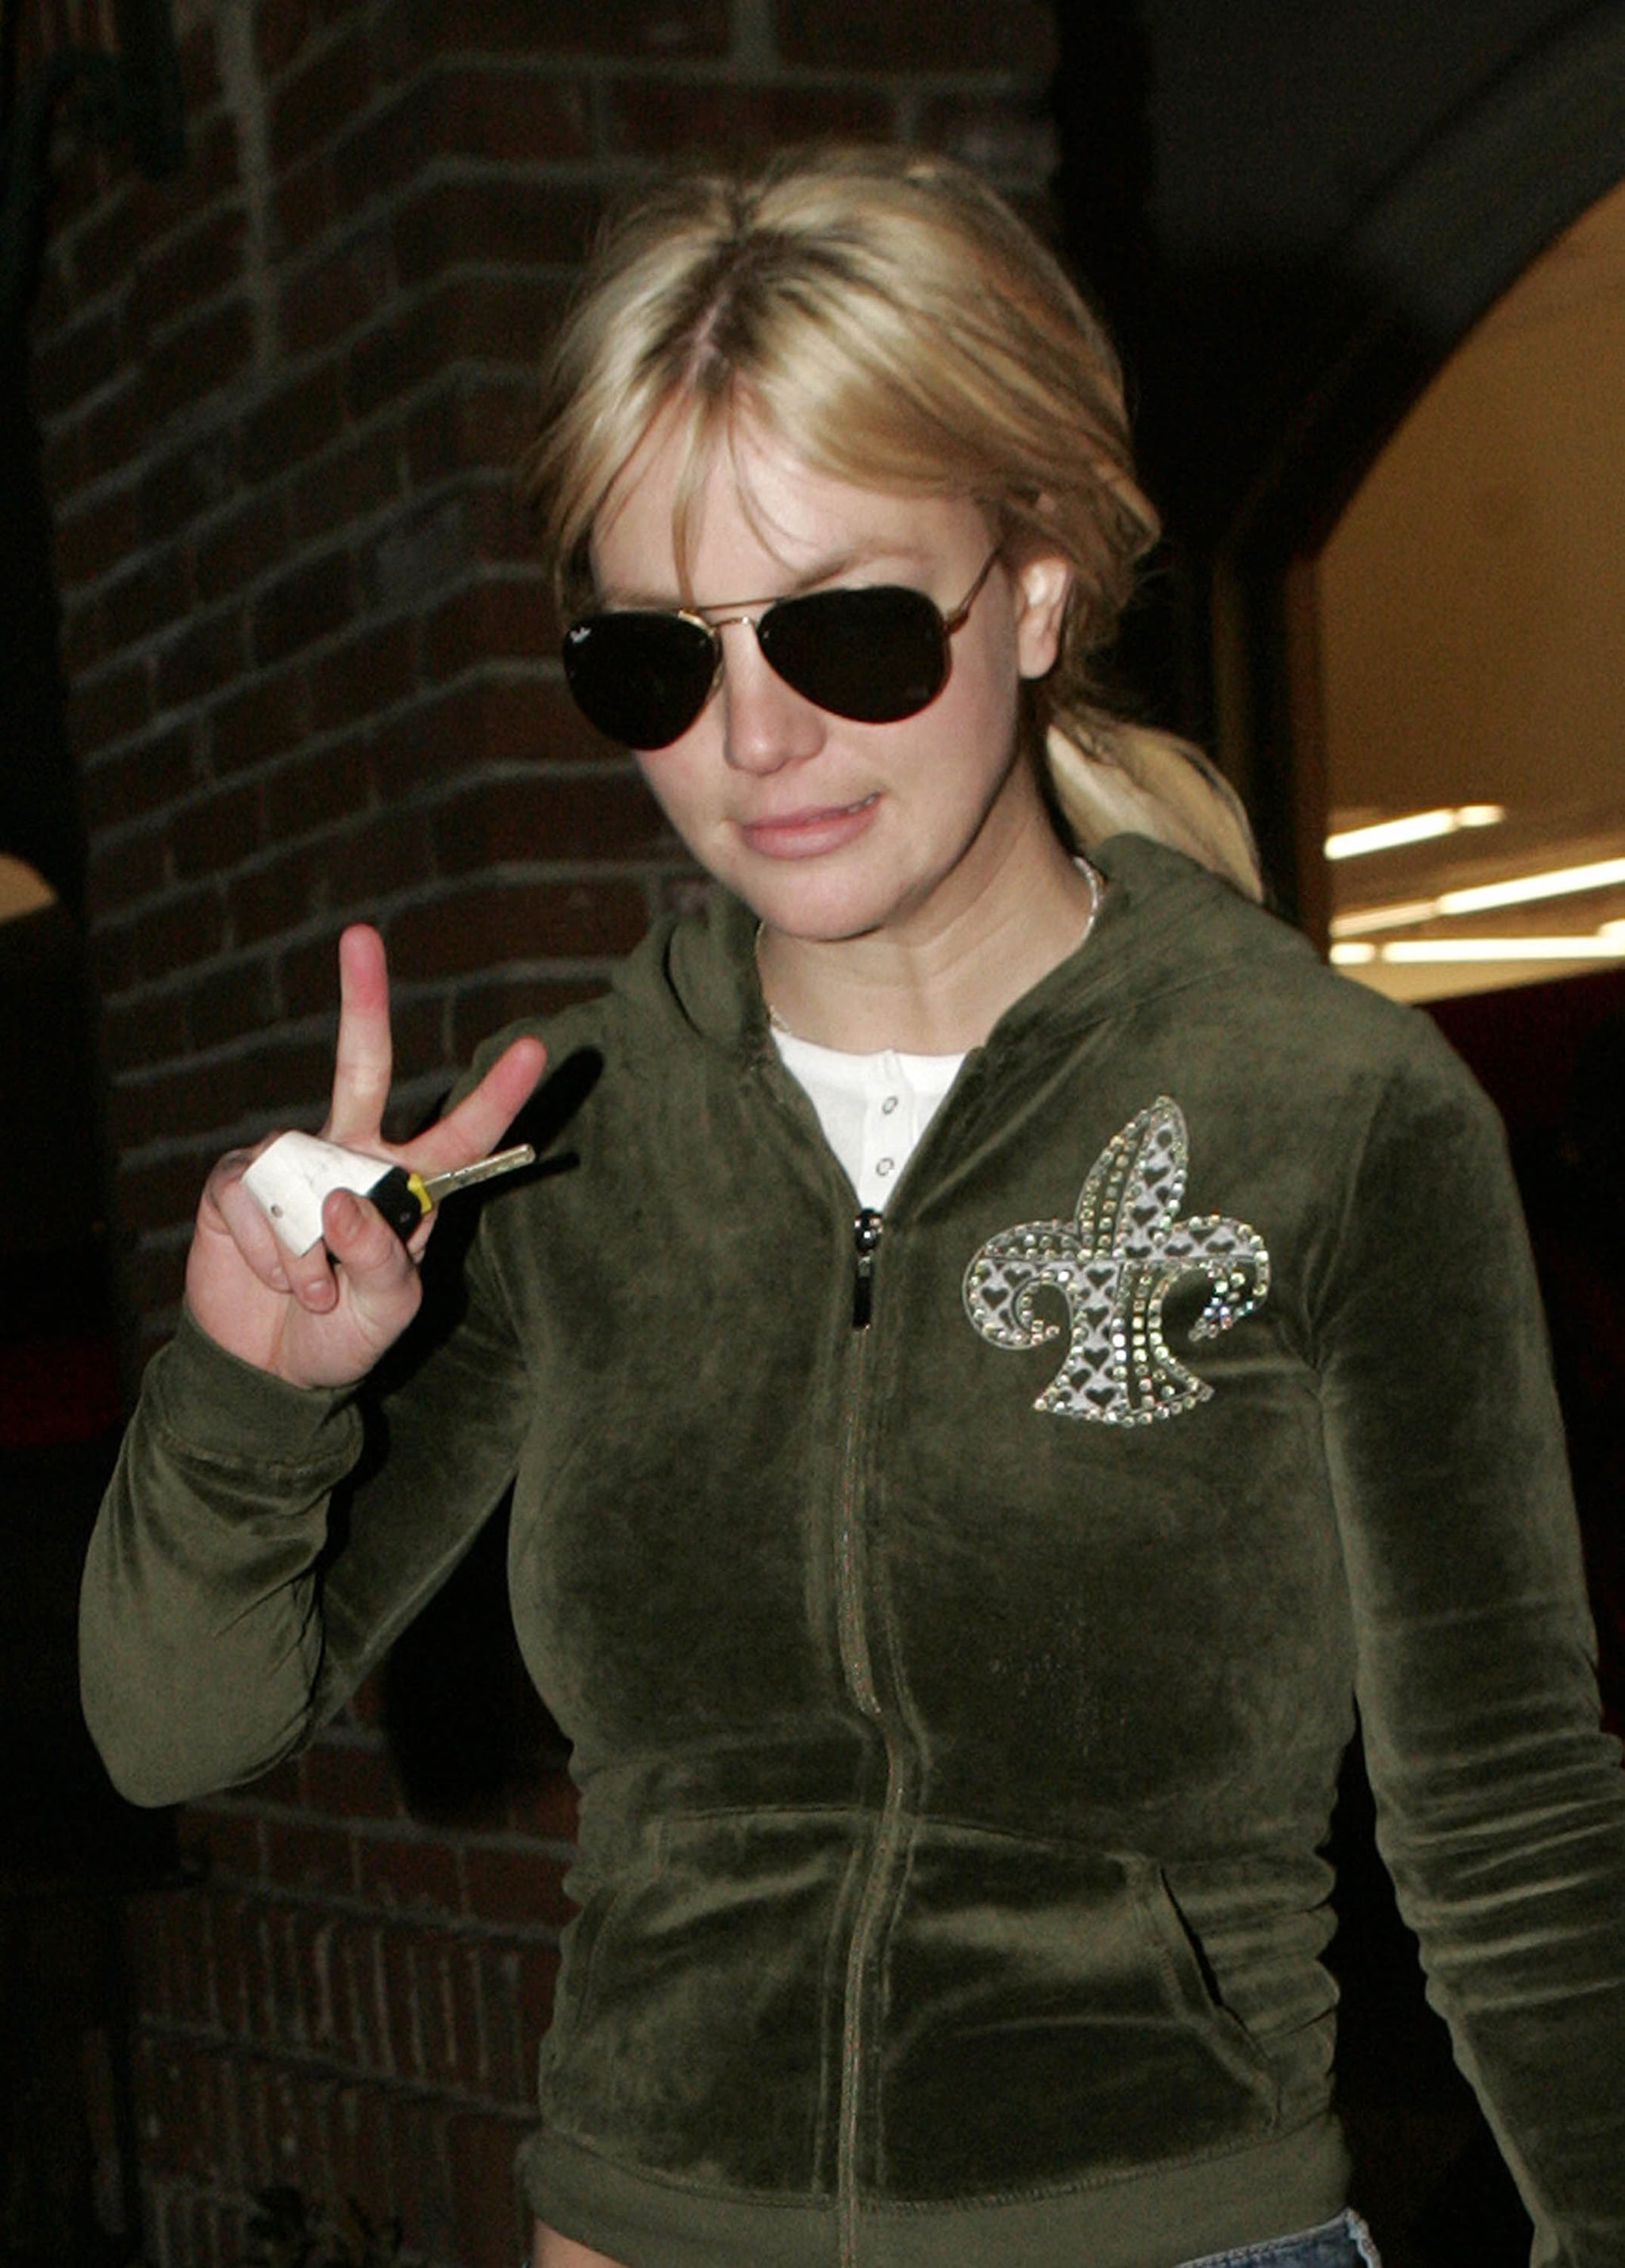 Britney_Spears_014a